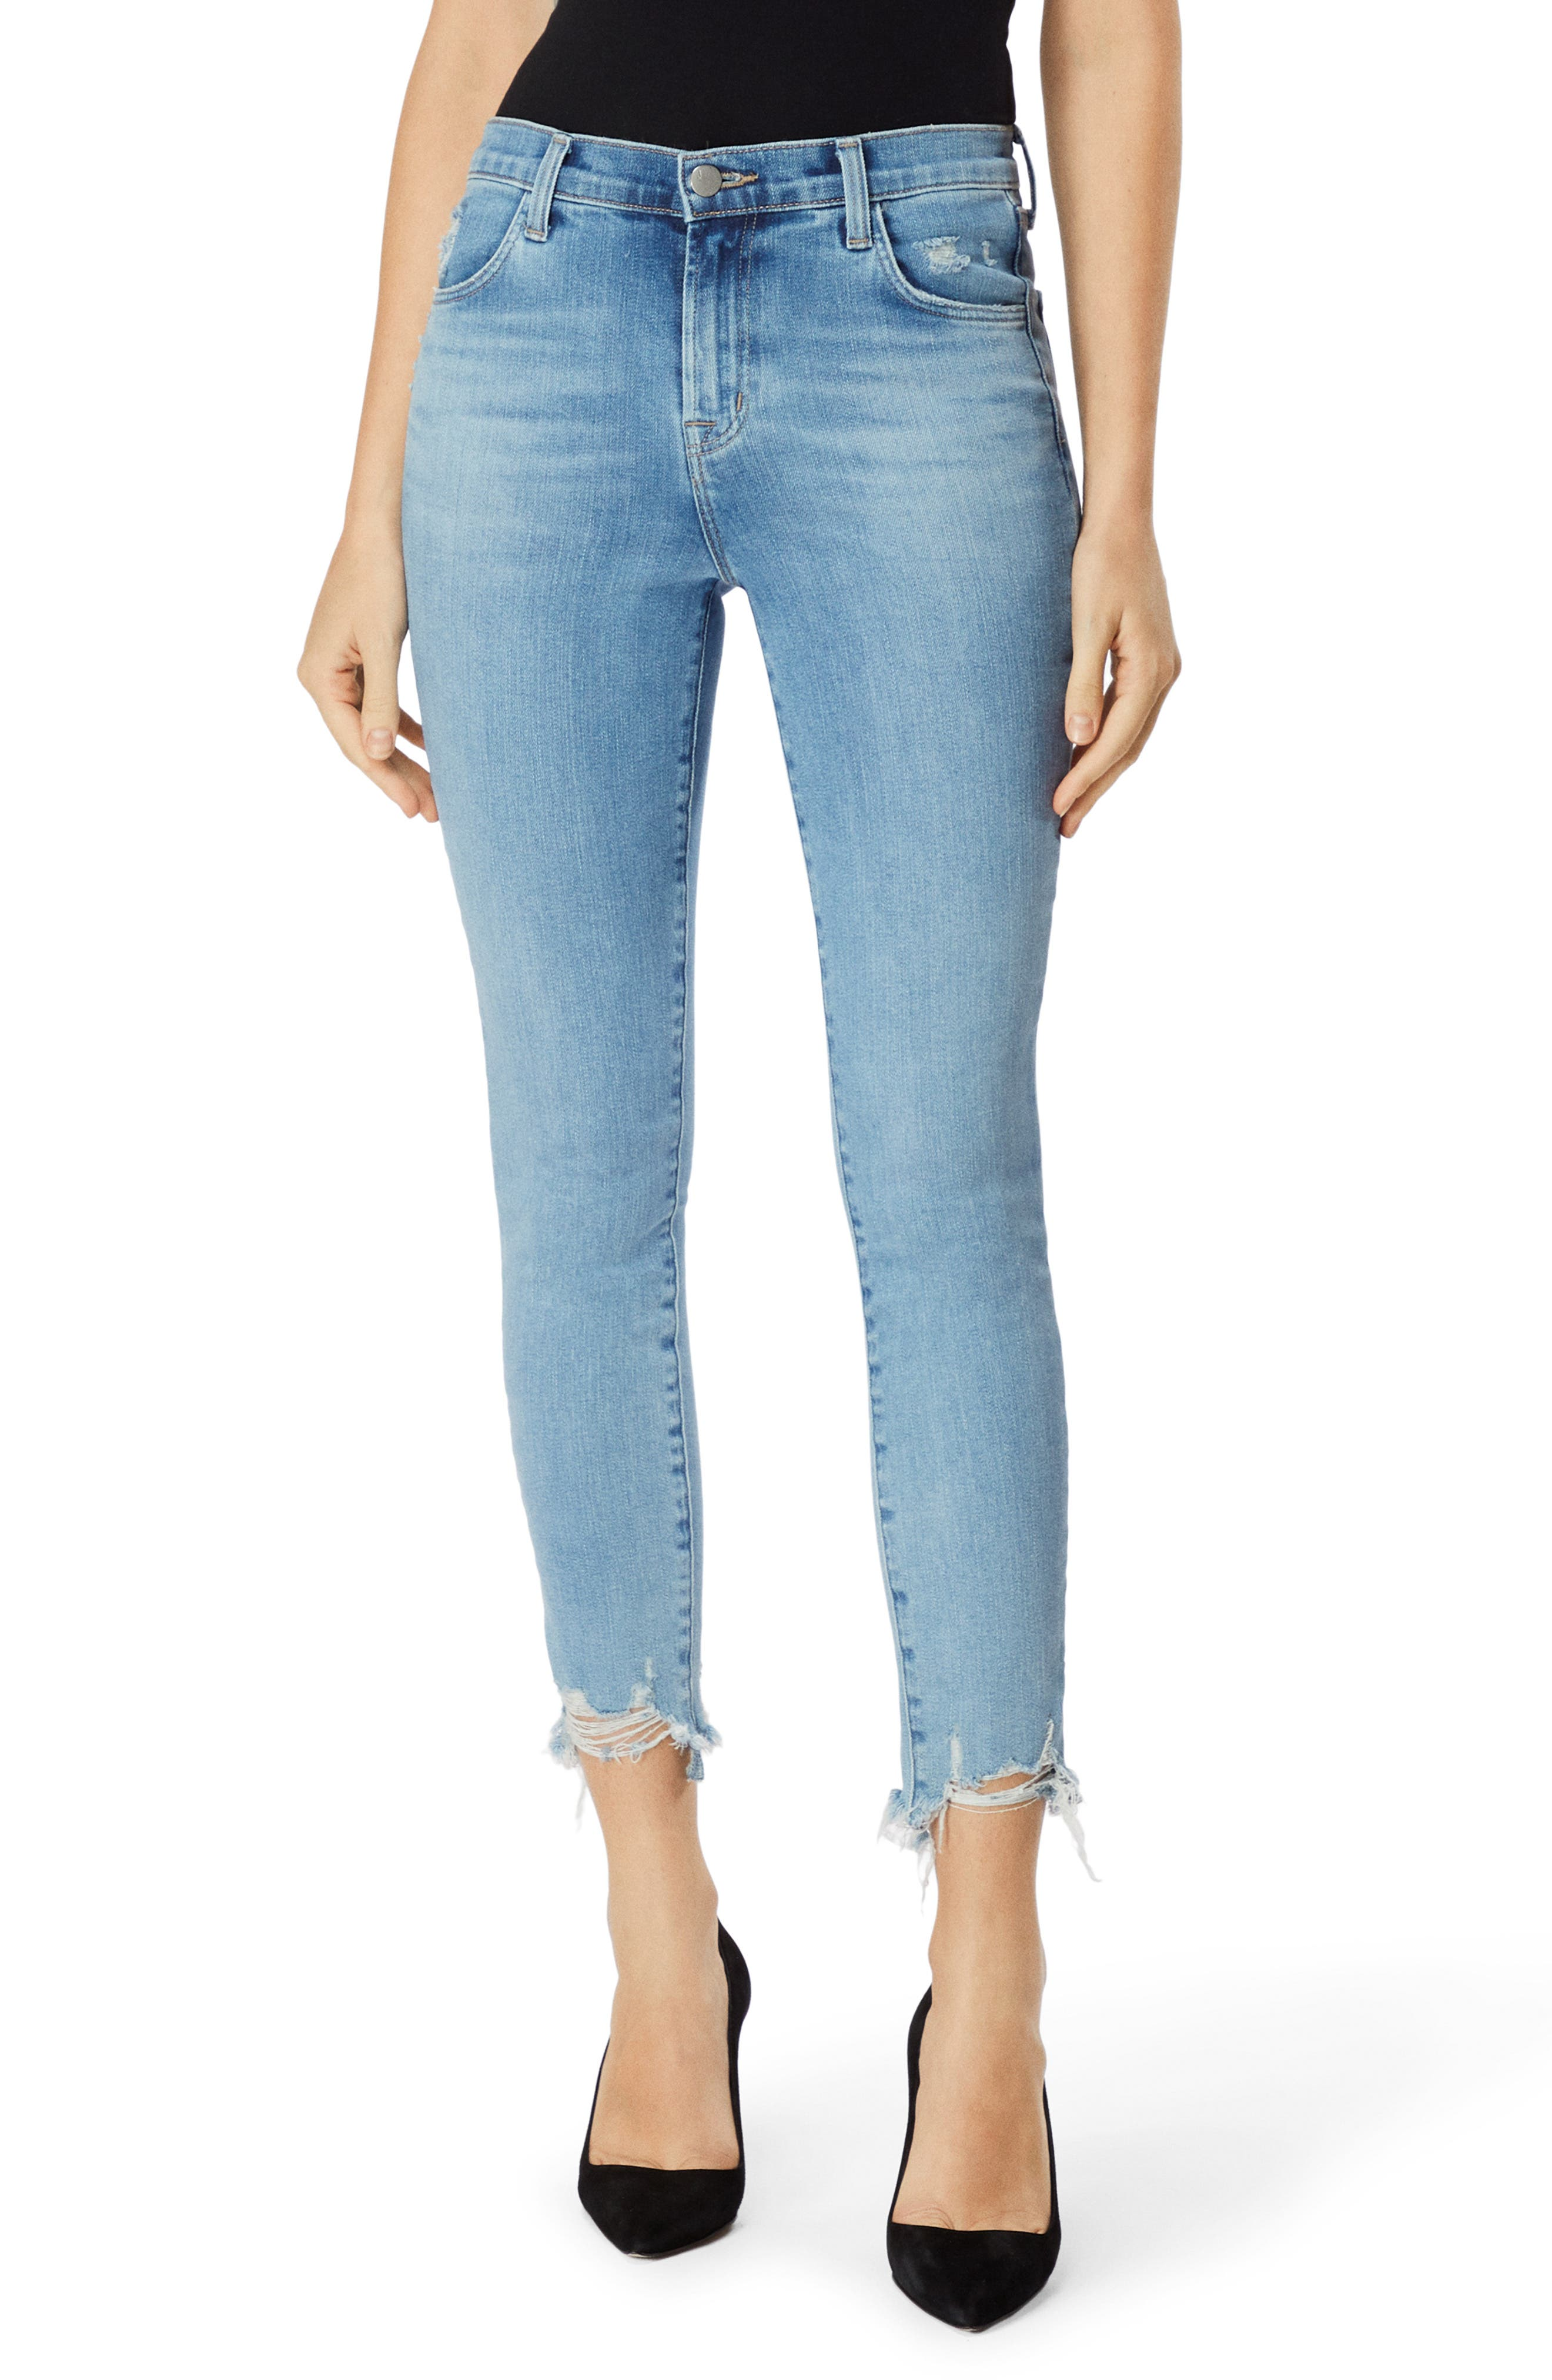 Alana High-Rise Crop Skinny Jeans With Destroyed Hem in Teardrop